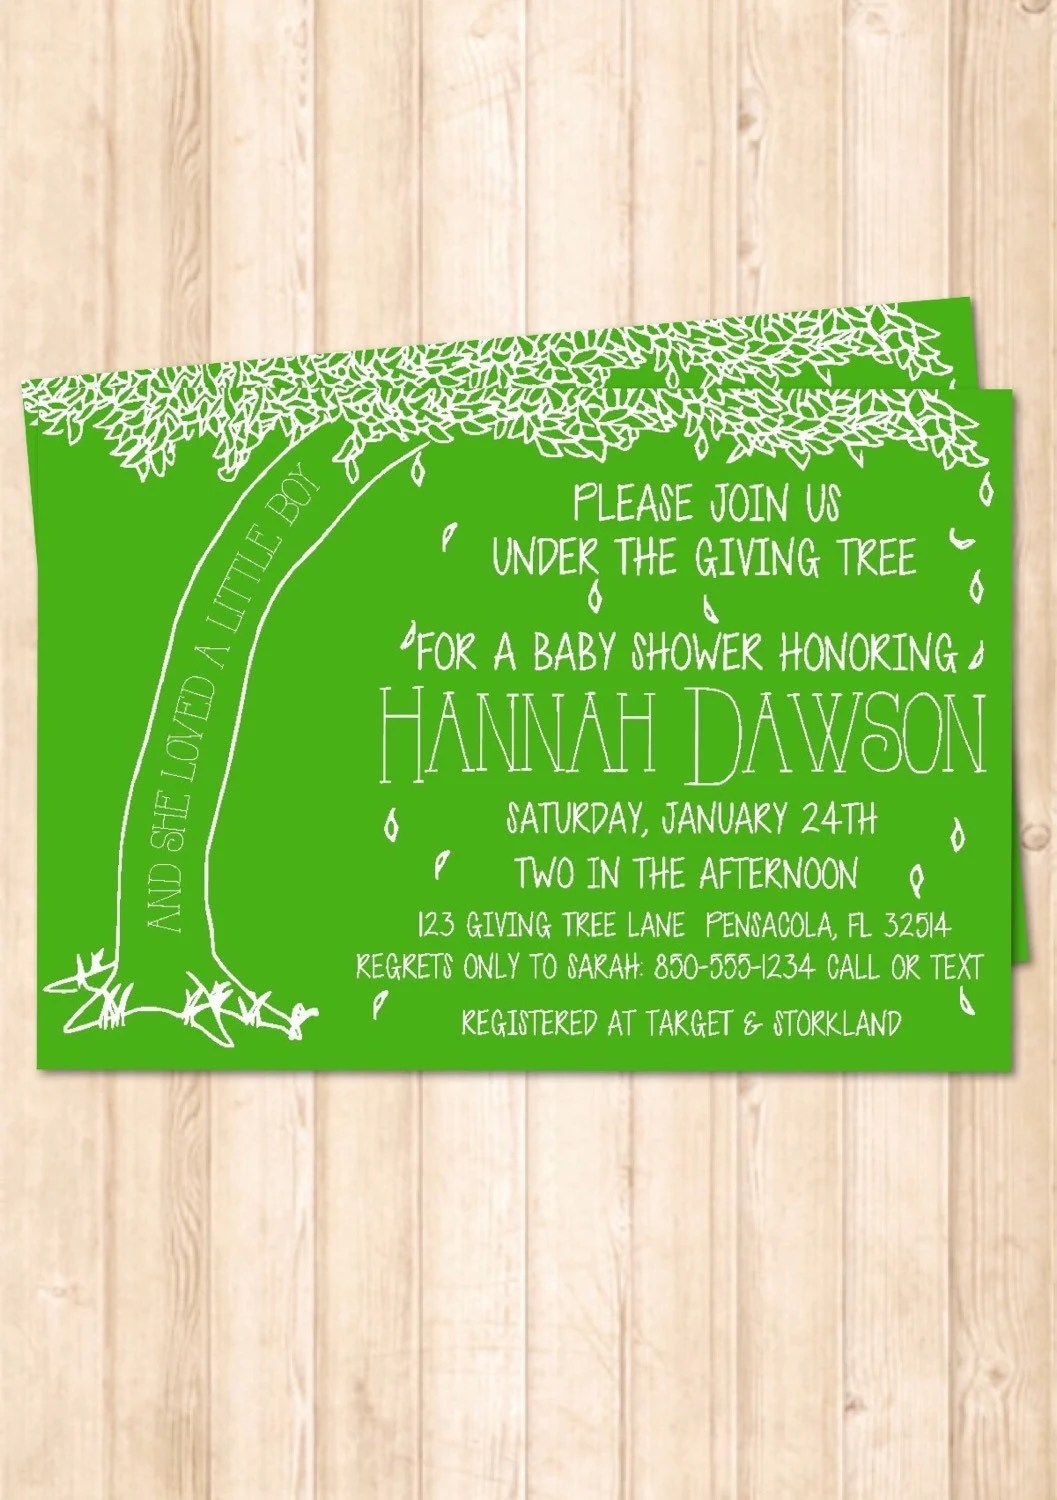 The Giving Tree Baby Shower Invitation By Handmadesmilesdesign